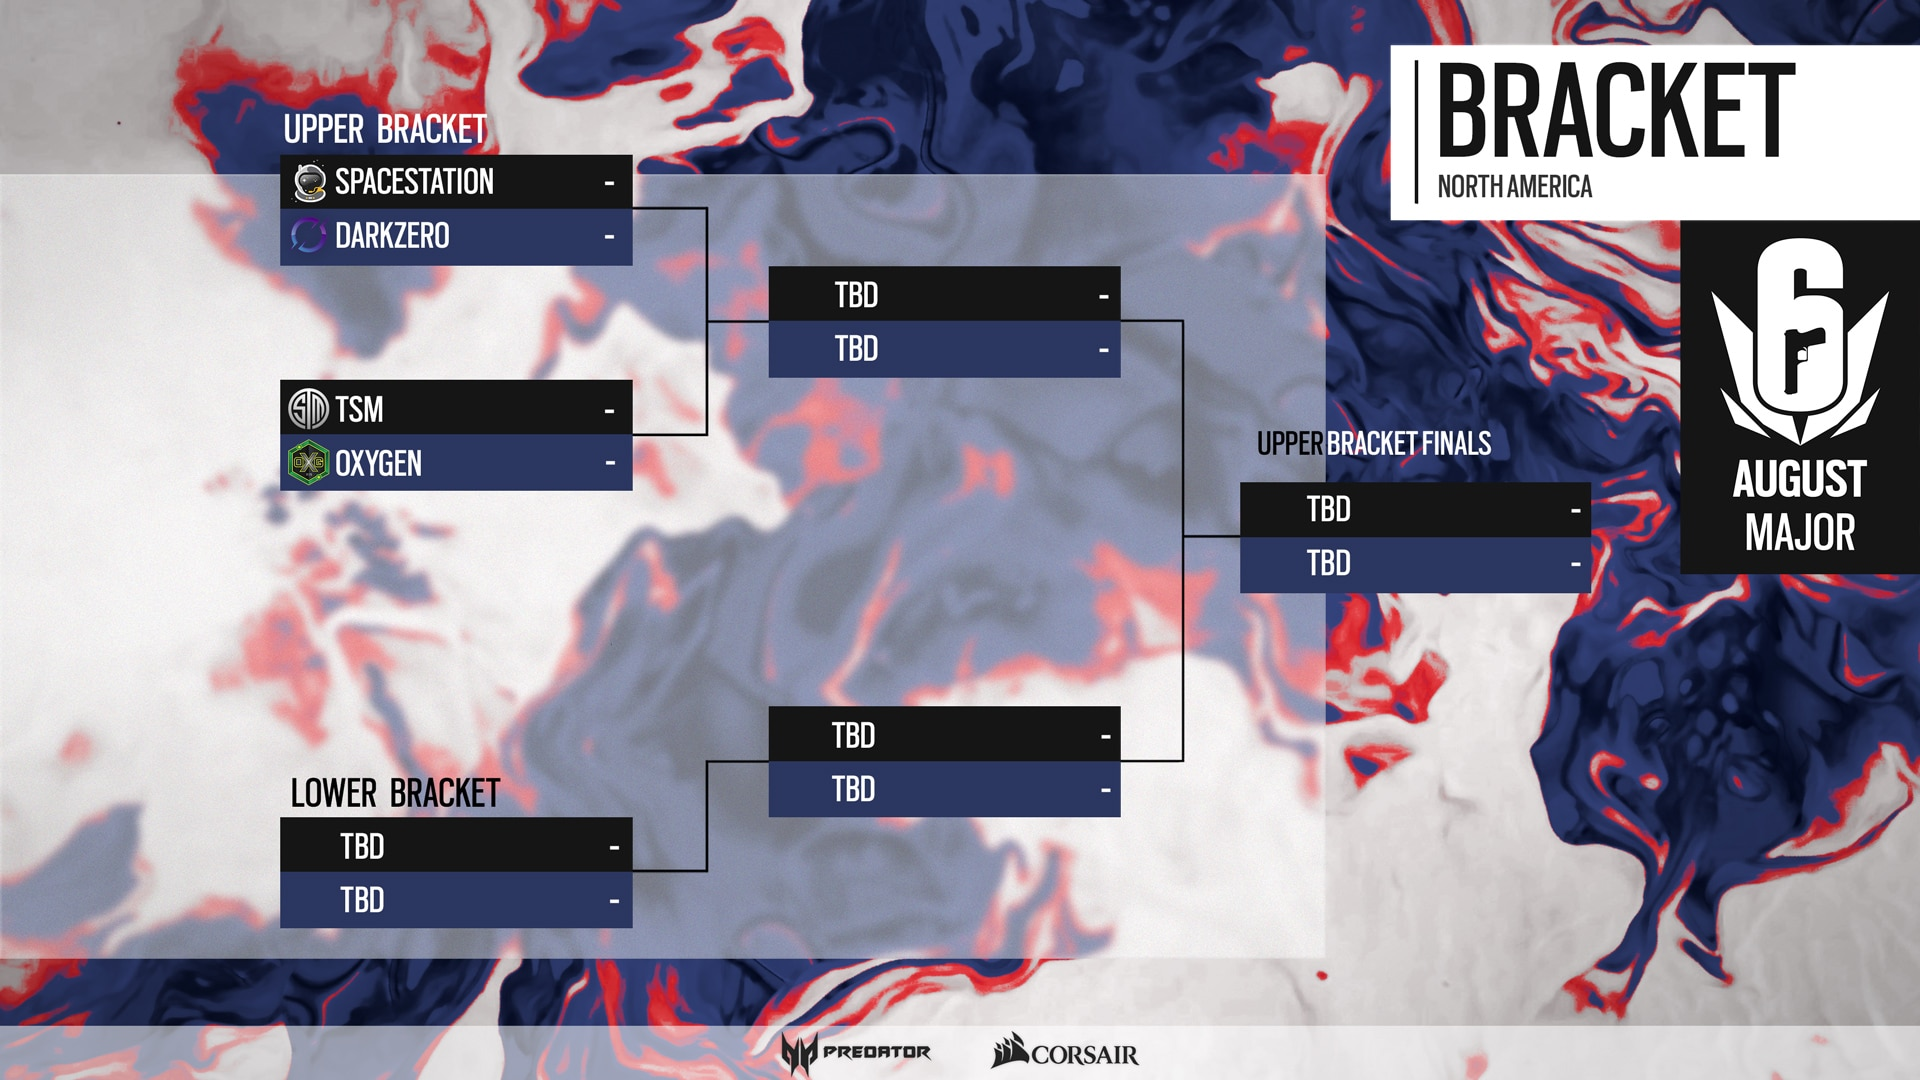 R6 AugustMajor GFX BRACKET